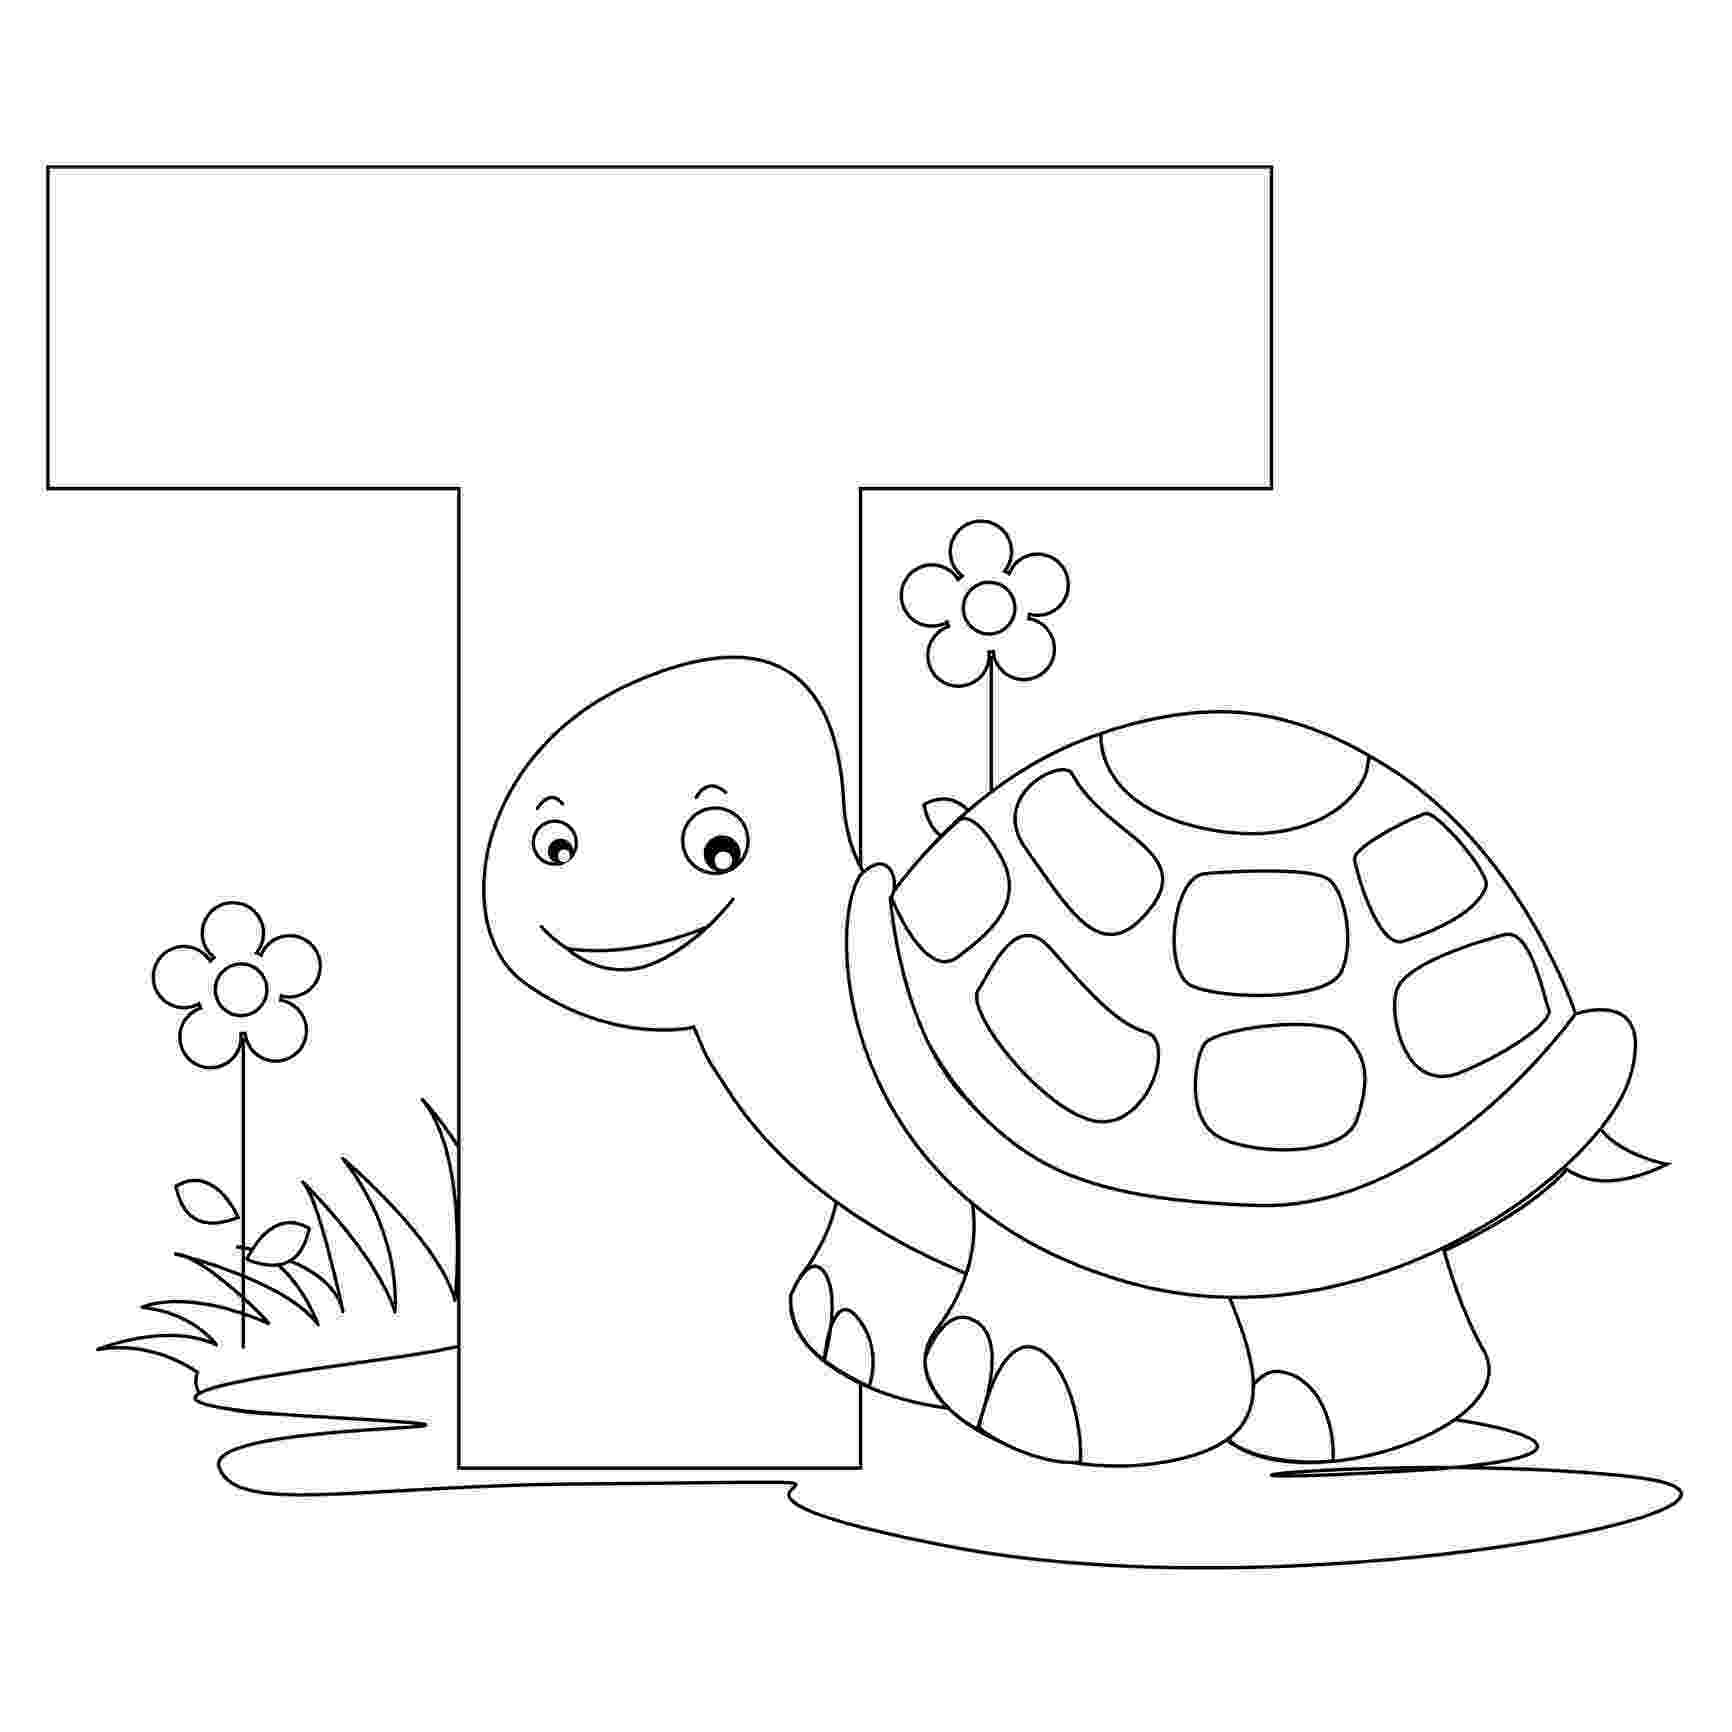 alphabet coloring worksheets free printable alphabet coloring pages for kids best alphabet worksheets coloring 1 1